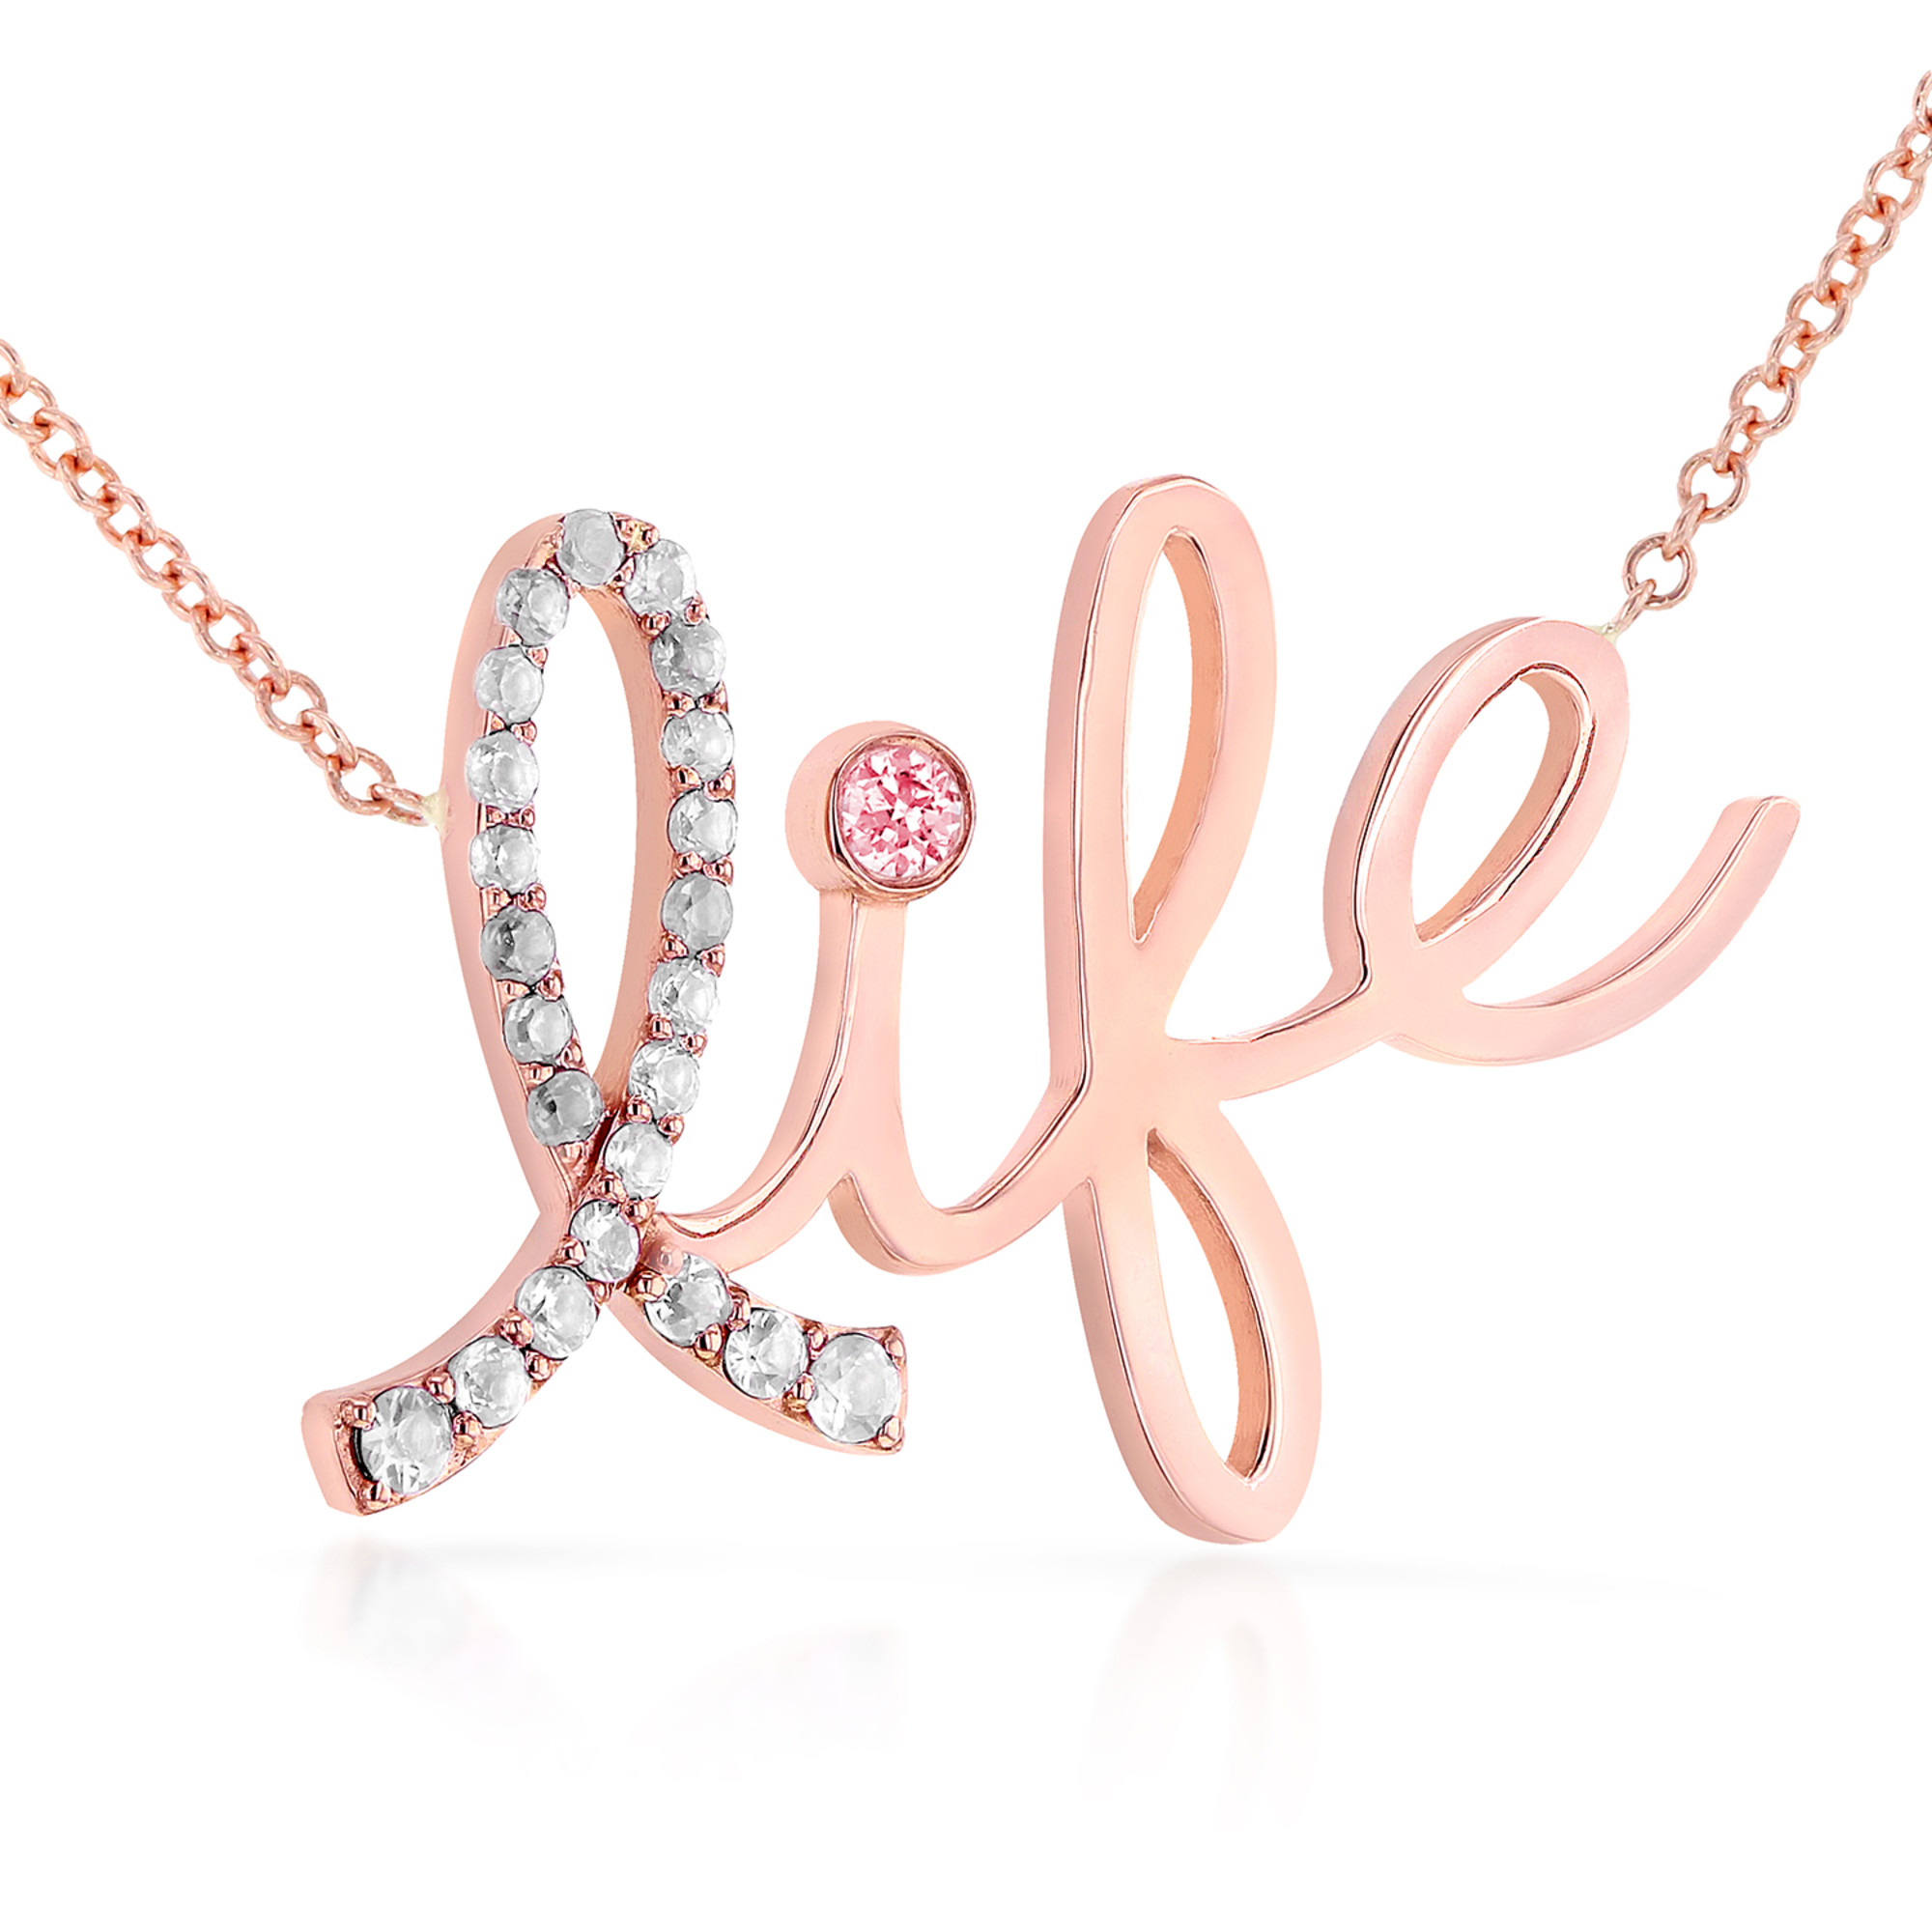 """Diamond & Pink Sapphire """"Life"""" Necklace 1 6 Carat (ctw) in 14k Rose Gold (16"""" Chain) by"""